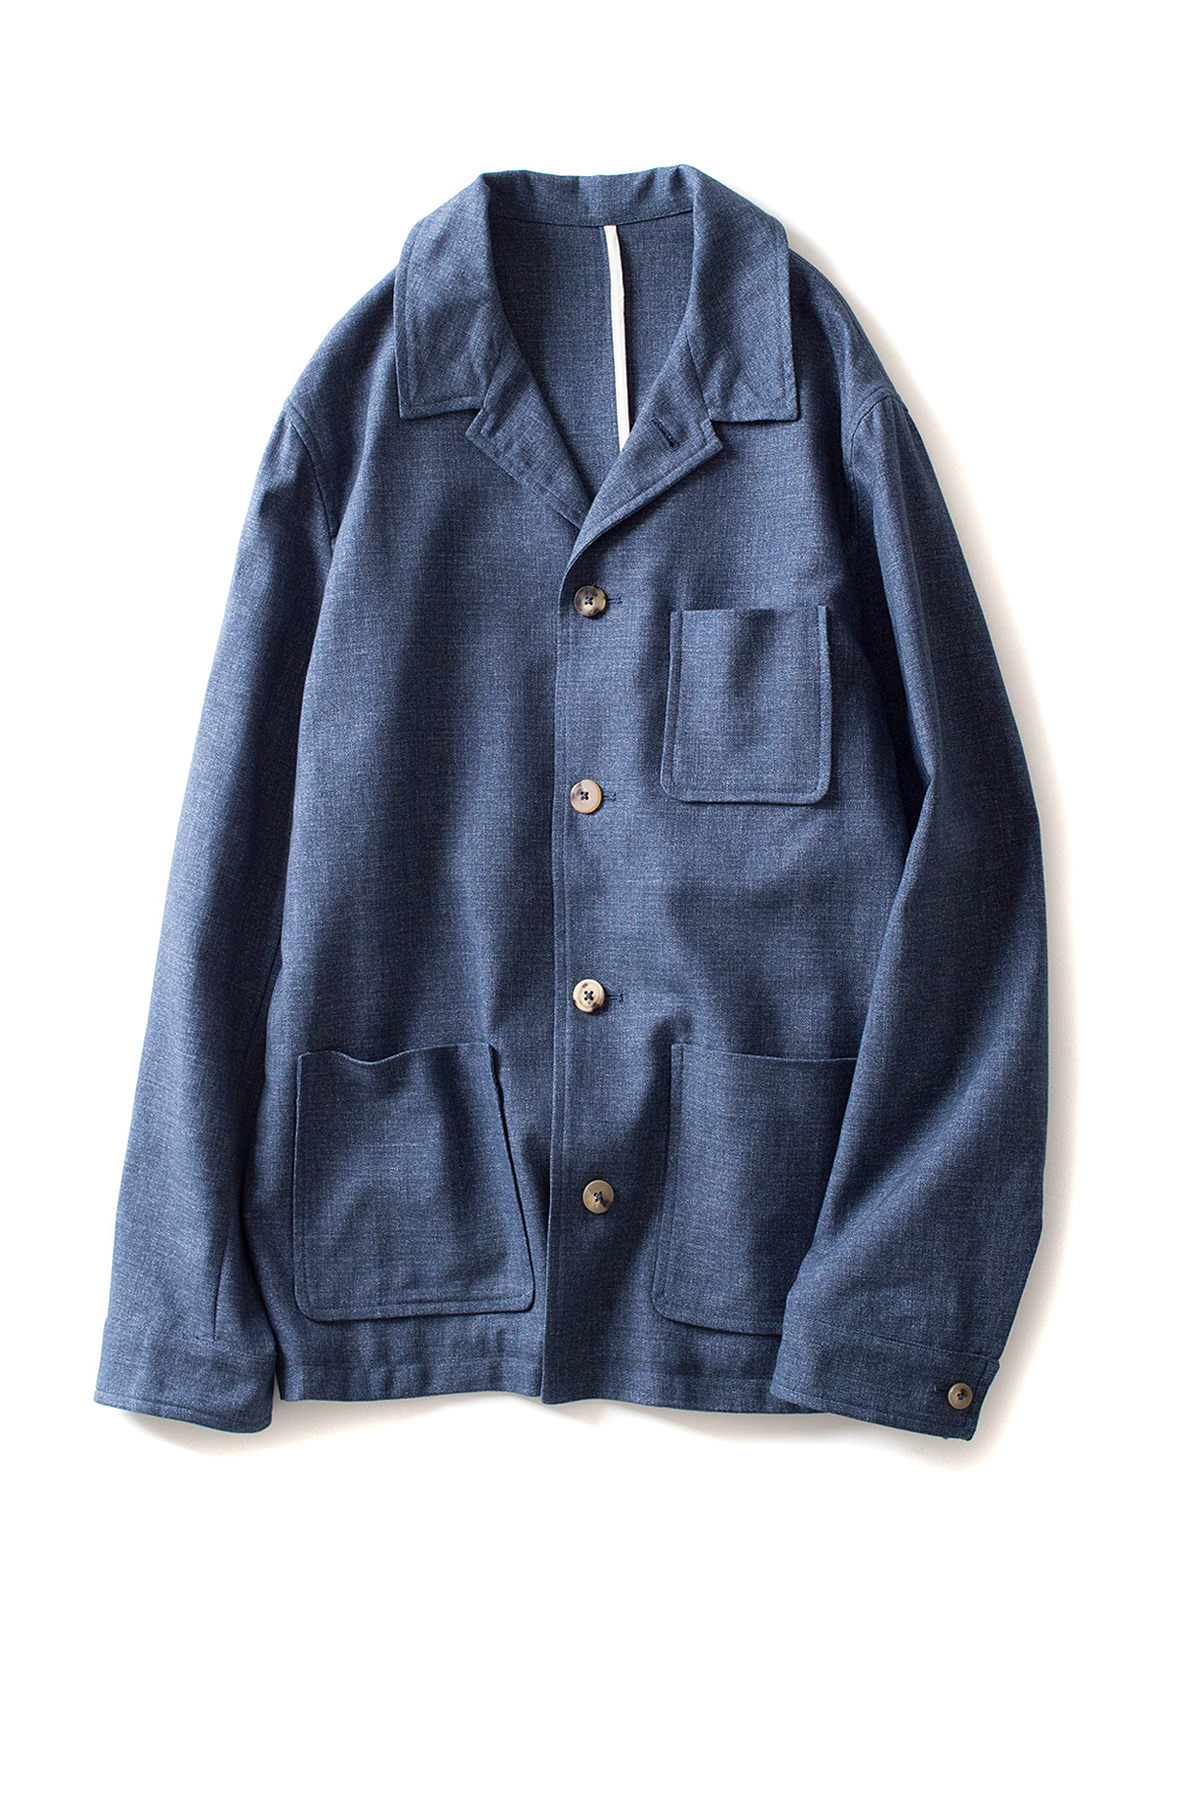 de bonne facture : Work Jacket (Denim Blue)